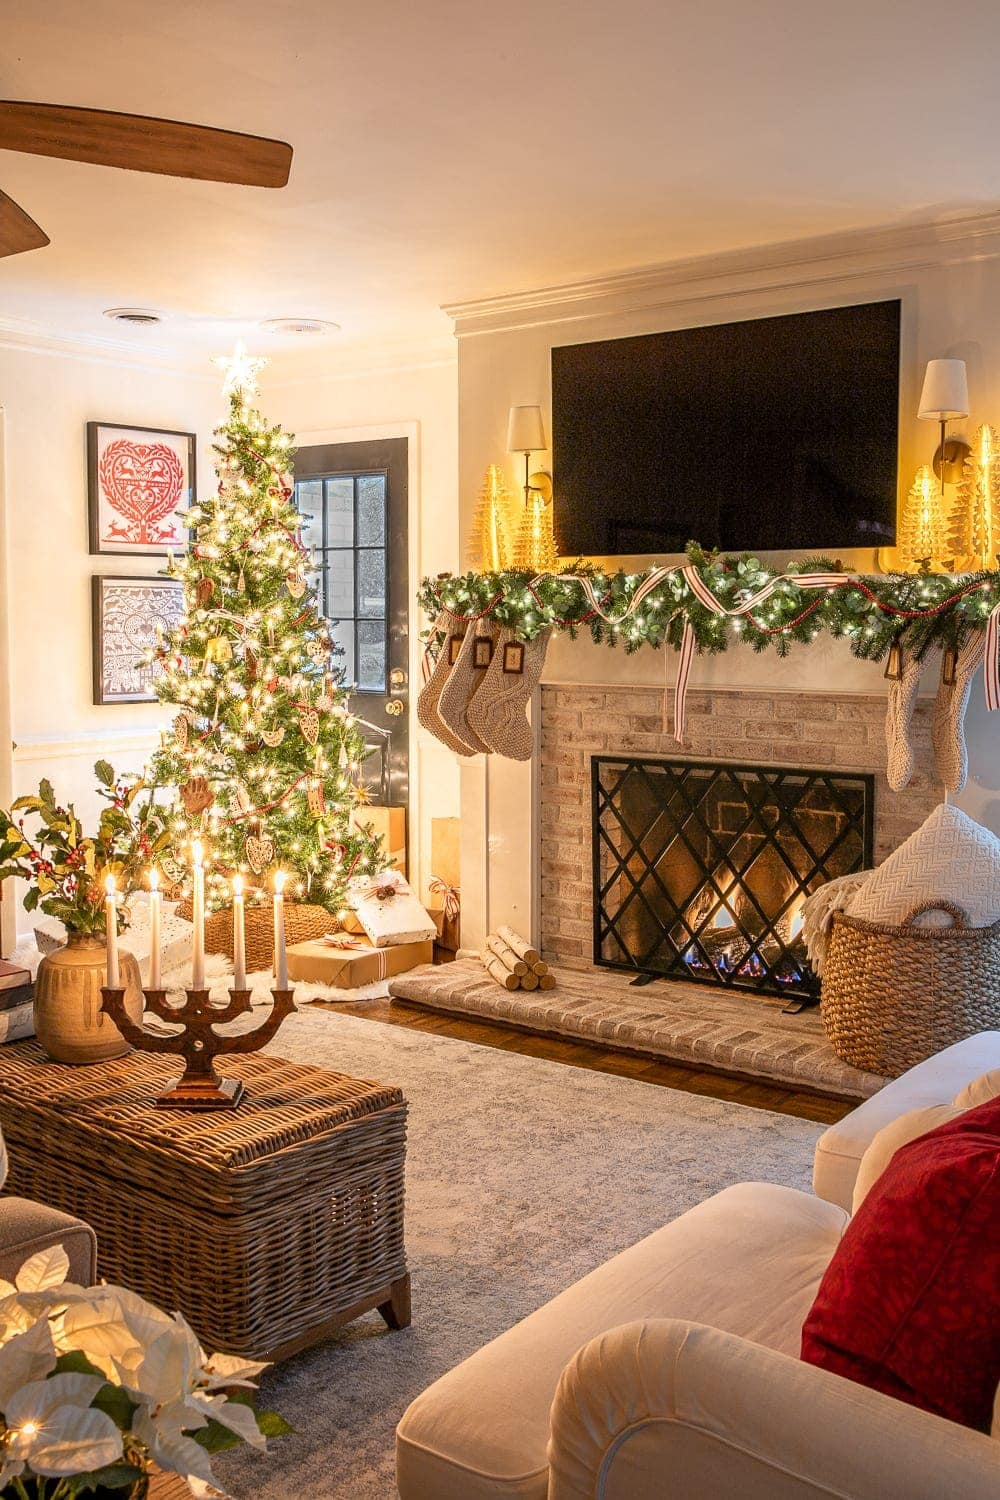 Christmas living room at night with fireplace and tree